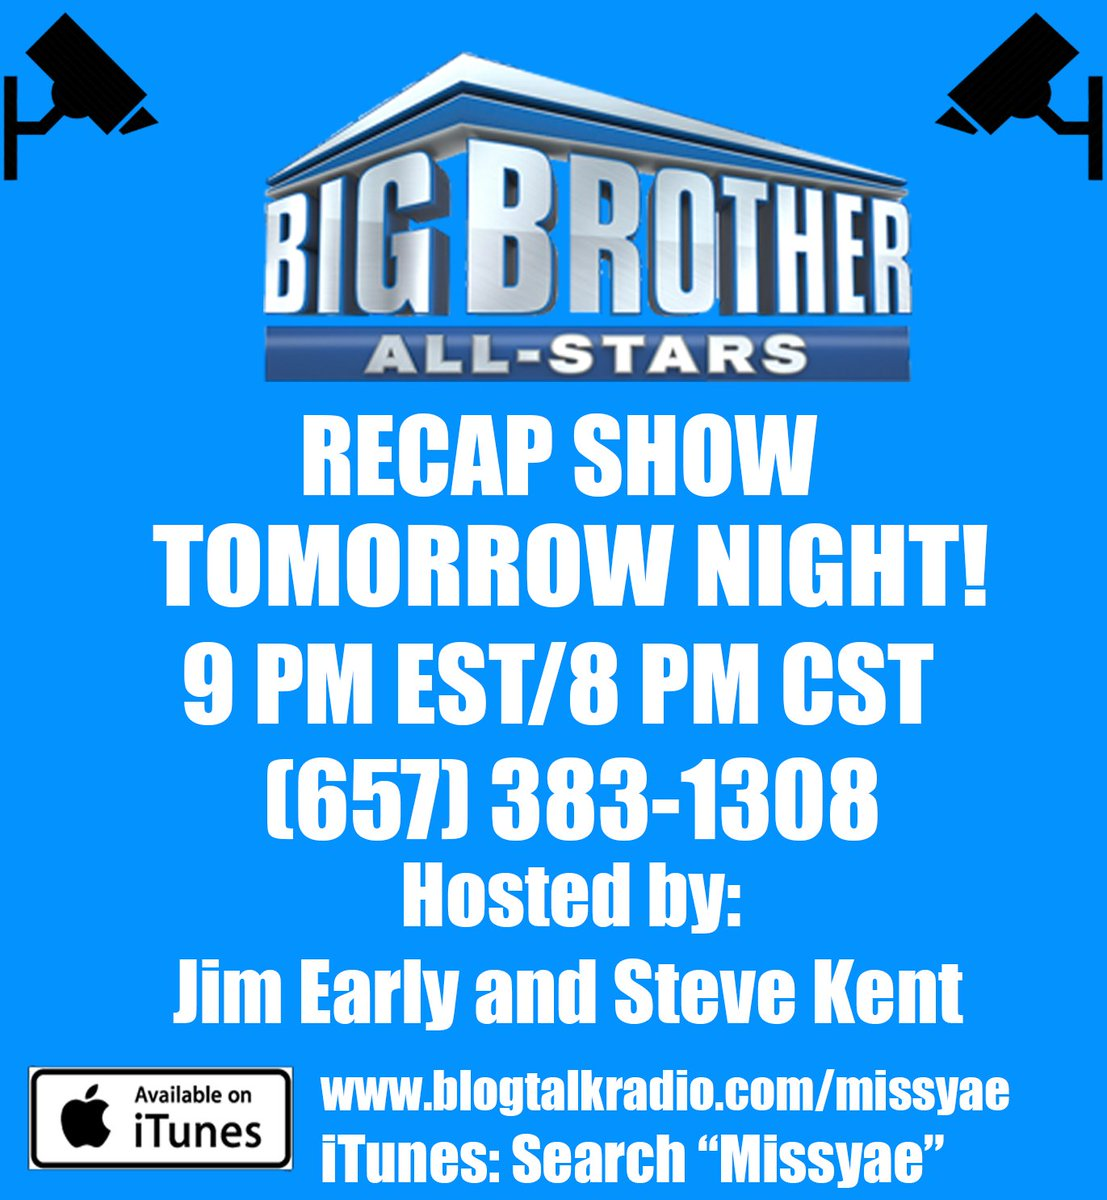 WE ARE LIVE!! @TheGameSurvivor presents the FINALE edition of the #MissyaePodcast: #BB22 Recap Show! Who will take home the grand prize and title of the newest #BigBrother winner? #BBFinale #BigBrother22 #BigBrotherWhispersFacebook #BBLF #CBS https://t.co/MPwcBJgtIv https://t.co/sxrDdT9iJv